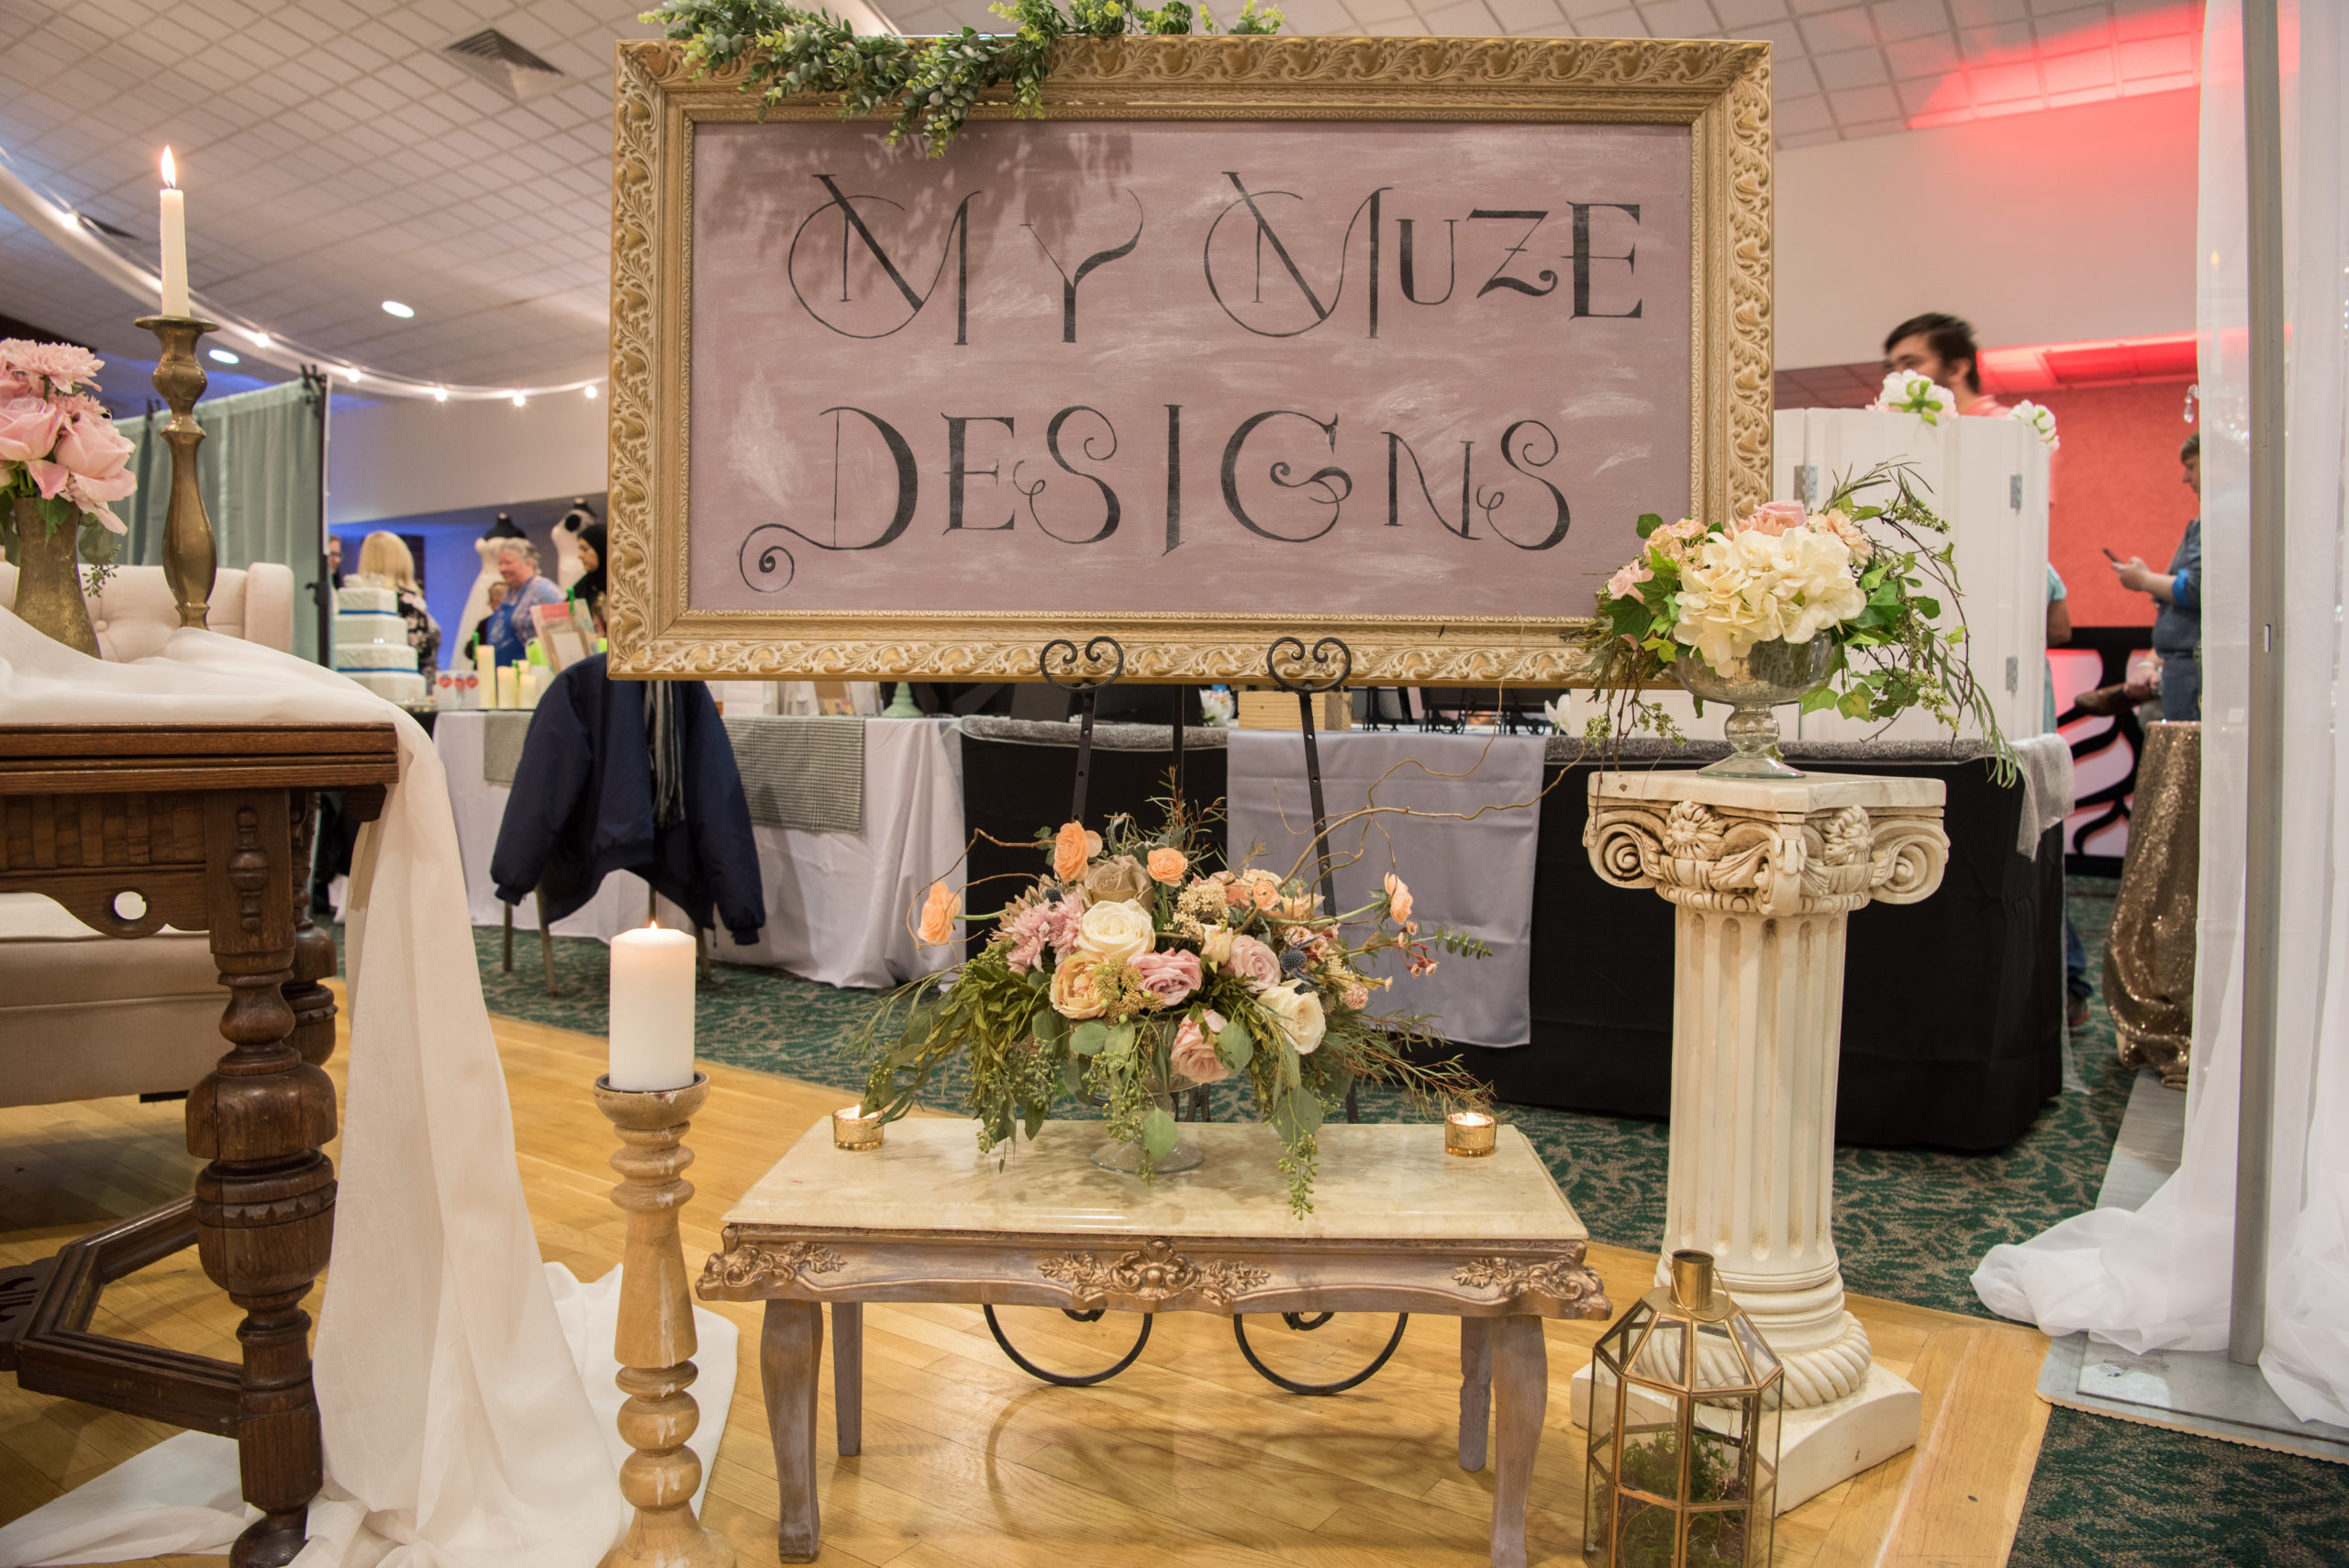 Cleveland bridal show